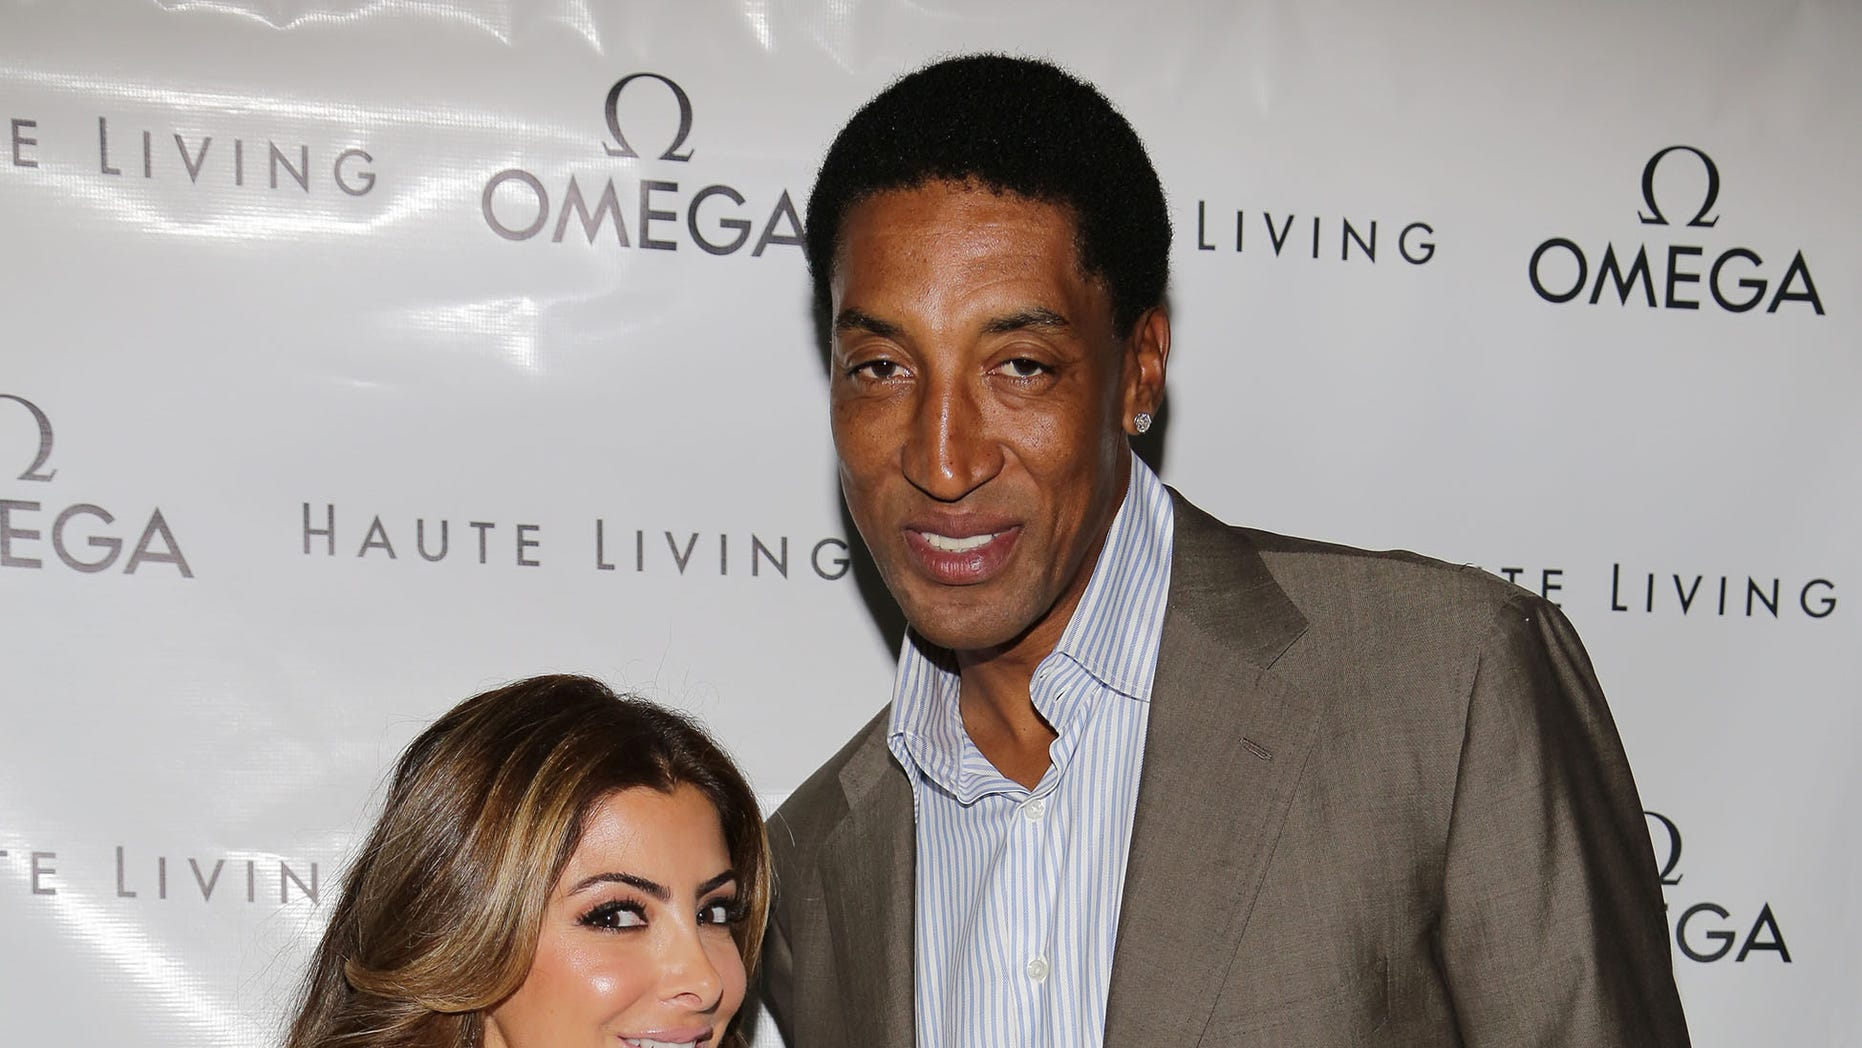 Larsa Pippen has filed for divorce from Scottie Pippen after 21 years of marriage, according to court documents obtained by The Blast.